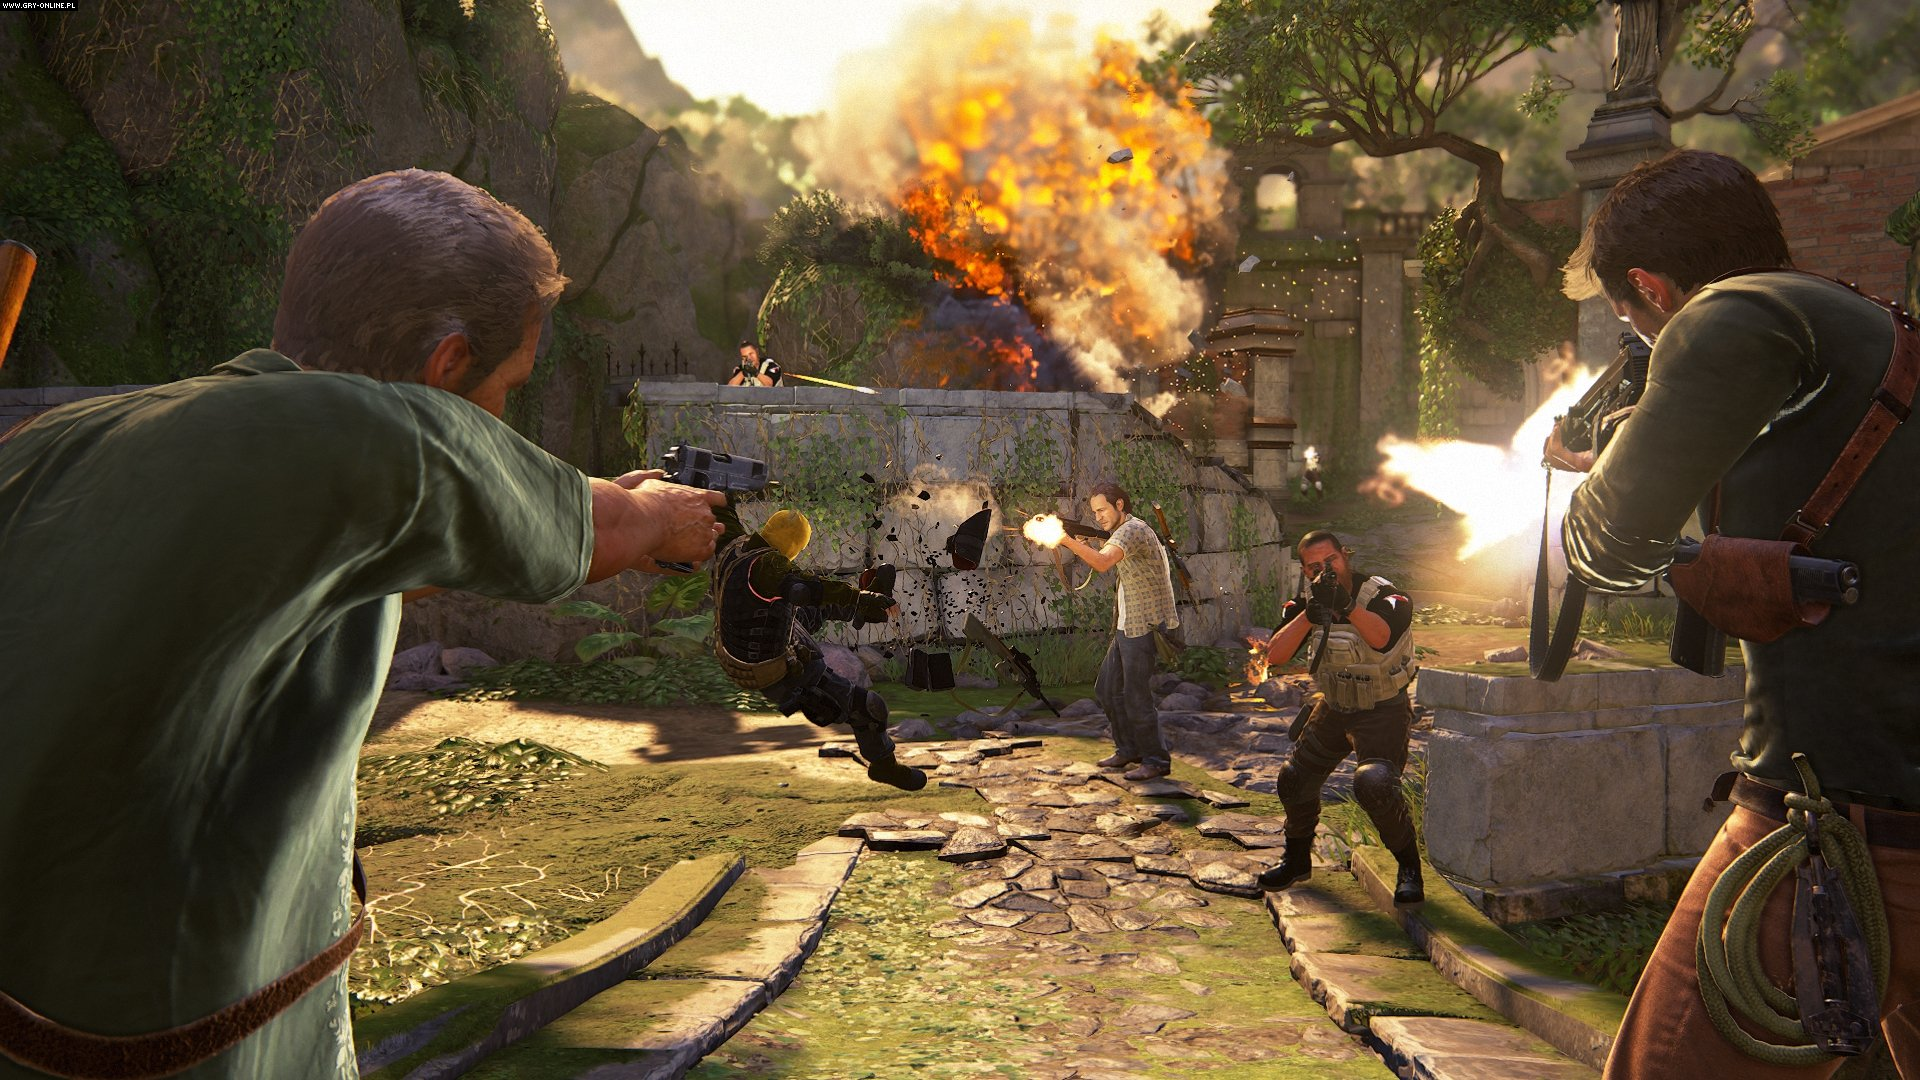 Uncharted 4: A Thief's End PS4 Games Image 1/135, Naughty Dog, Sony Interactive Entertainment